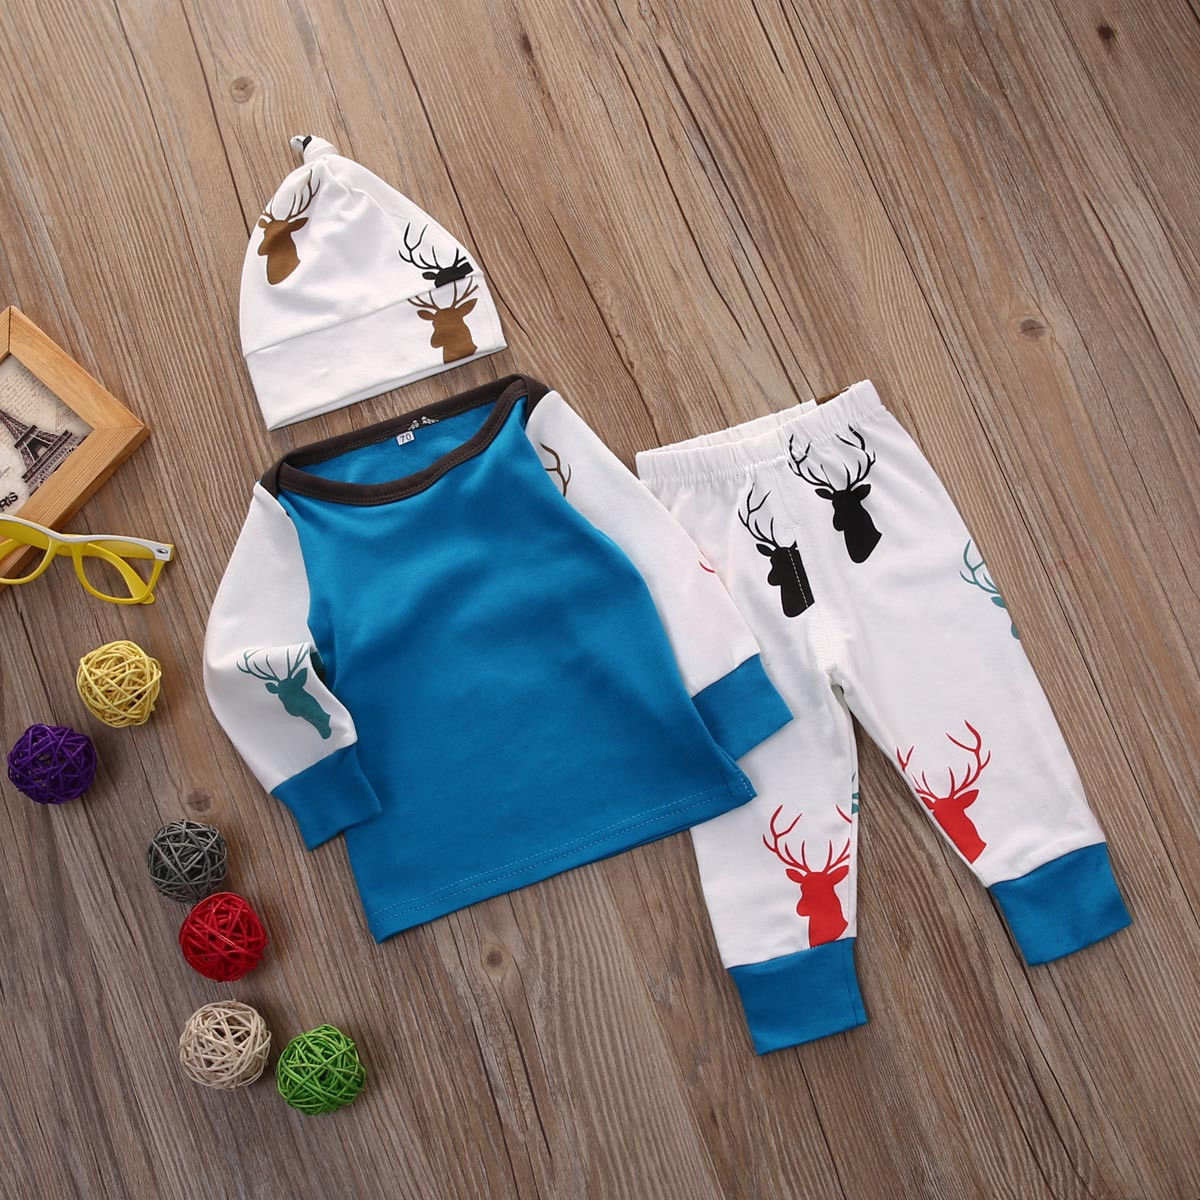 3Pcs Newborn Infant Baby Boys Girls Clothing Set 3pcs Top Deer Pants Leggings Hat Cotton Clothes Outfit Set Baby Boy Girl 2pcs set baby clothes set boy